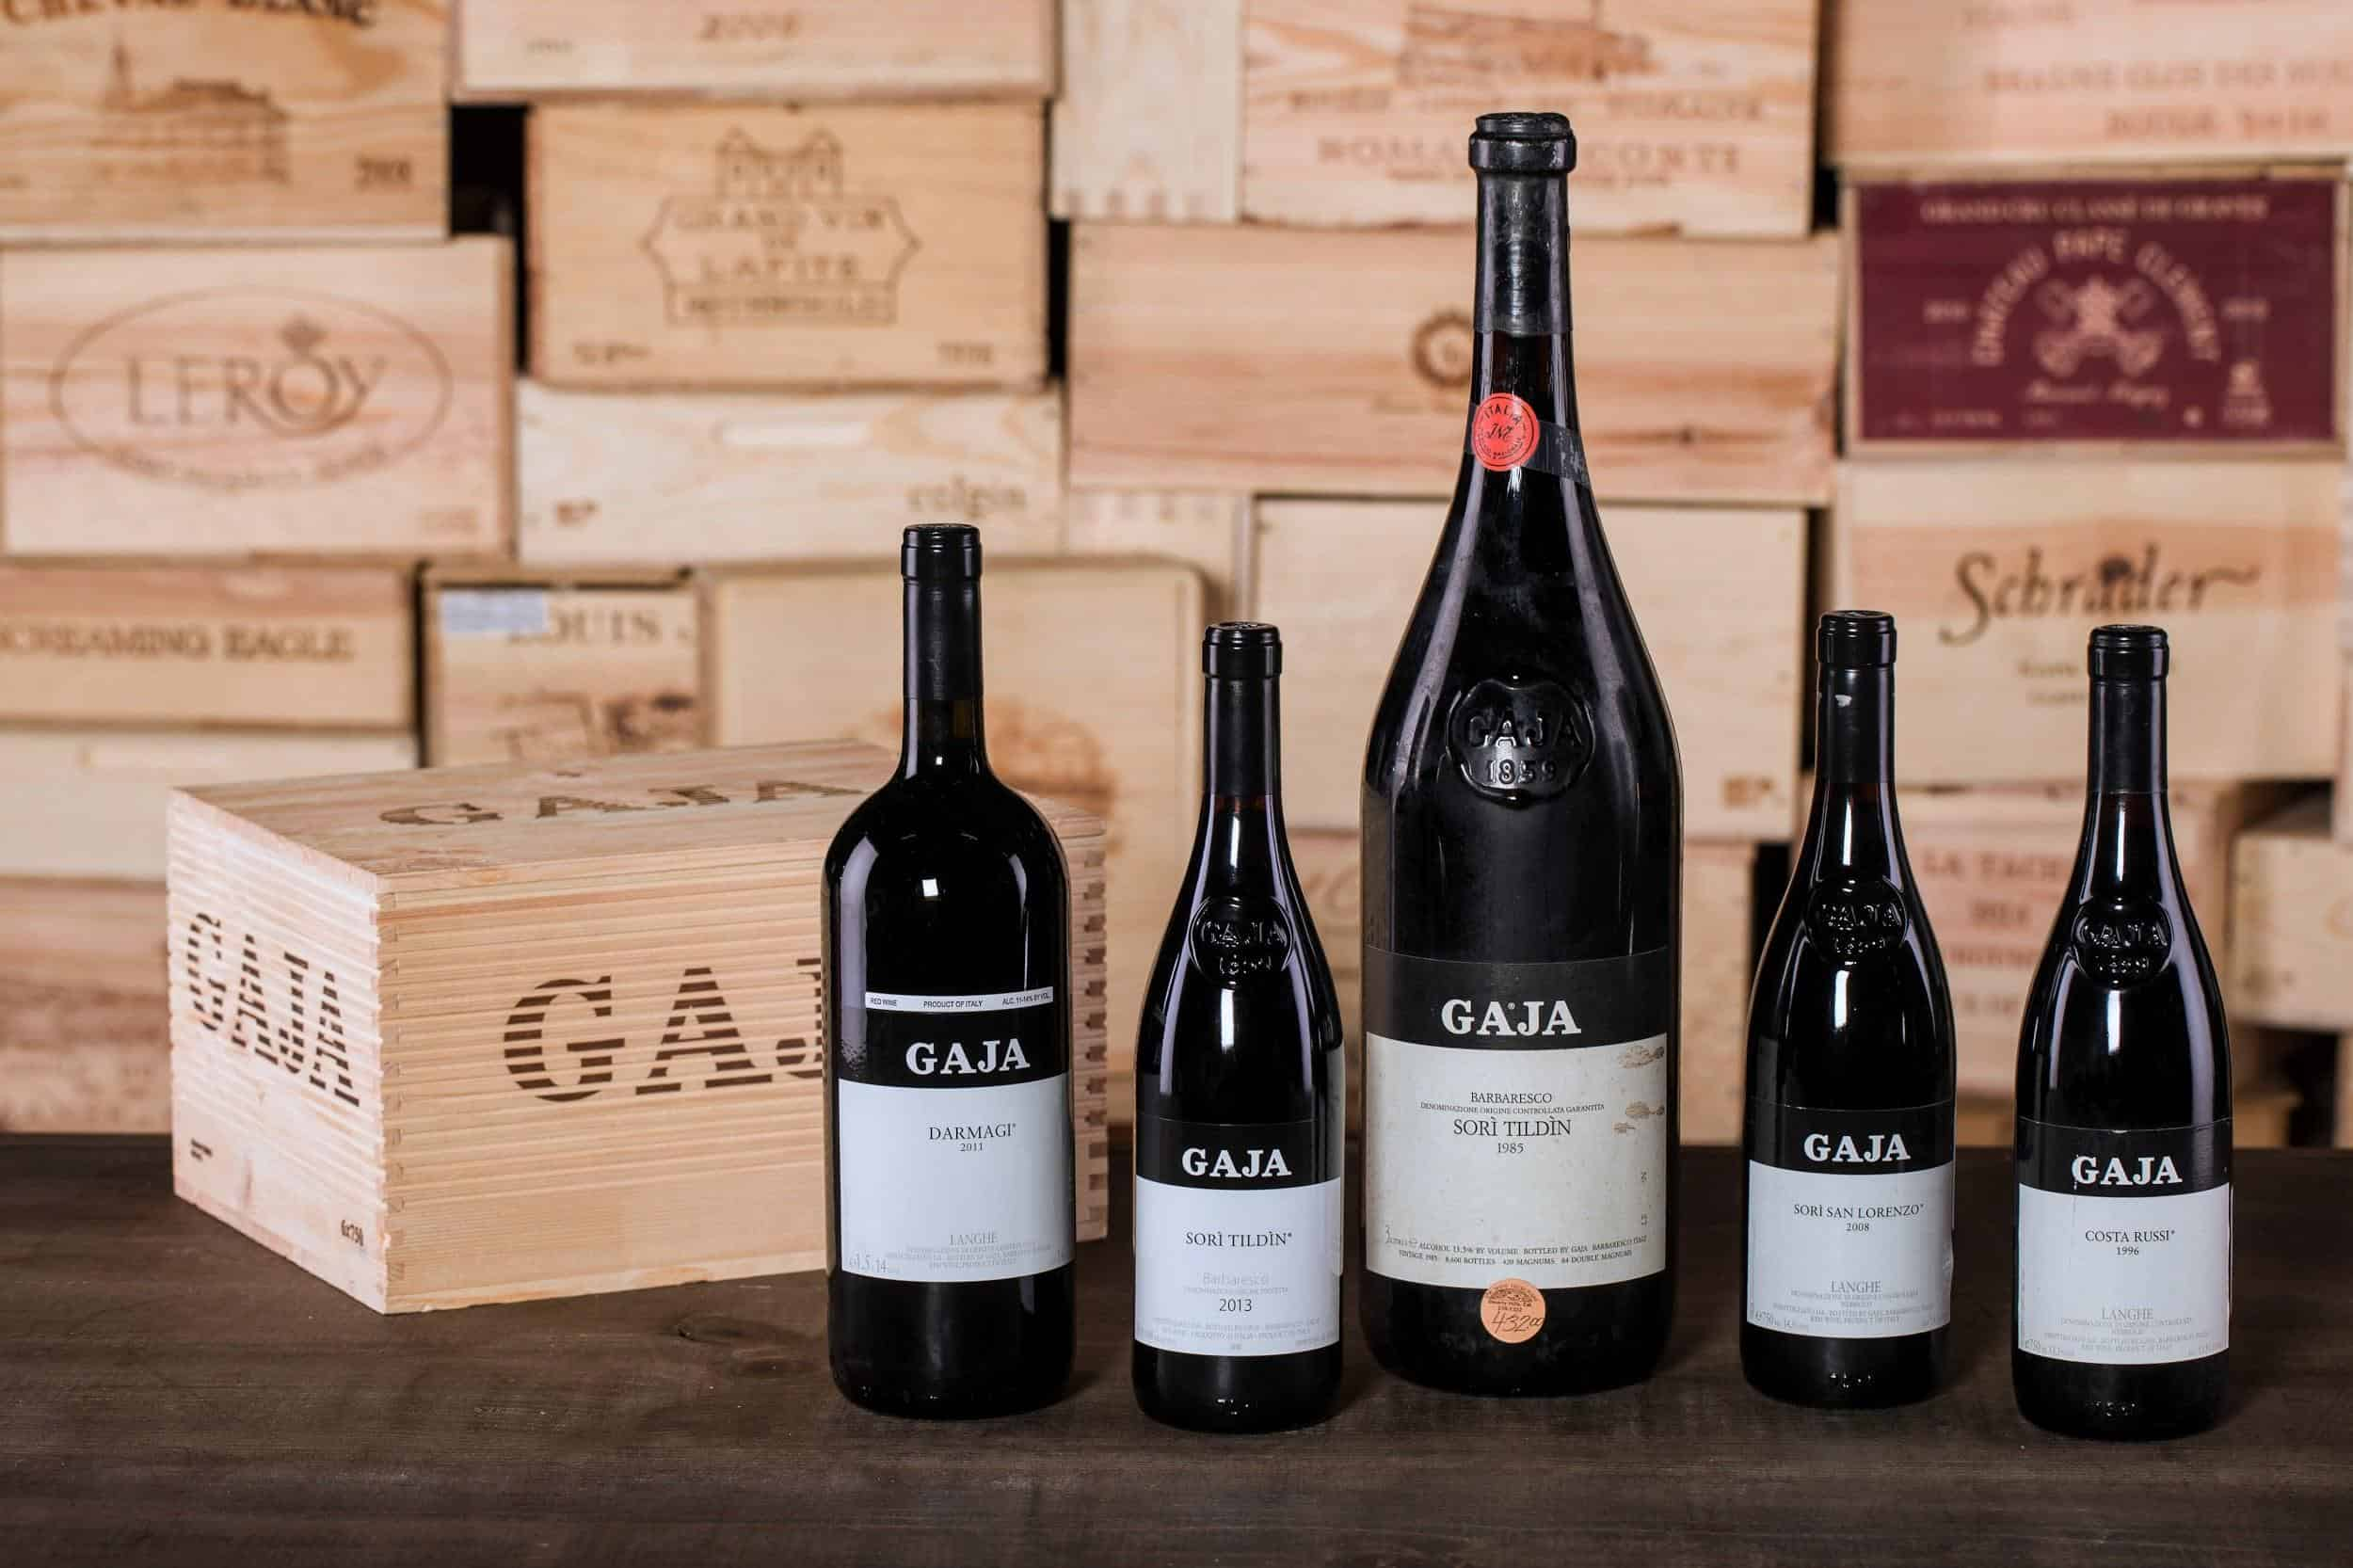 Gaja produces some of the best Langhe wines